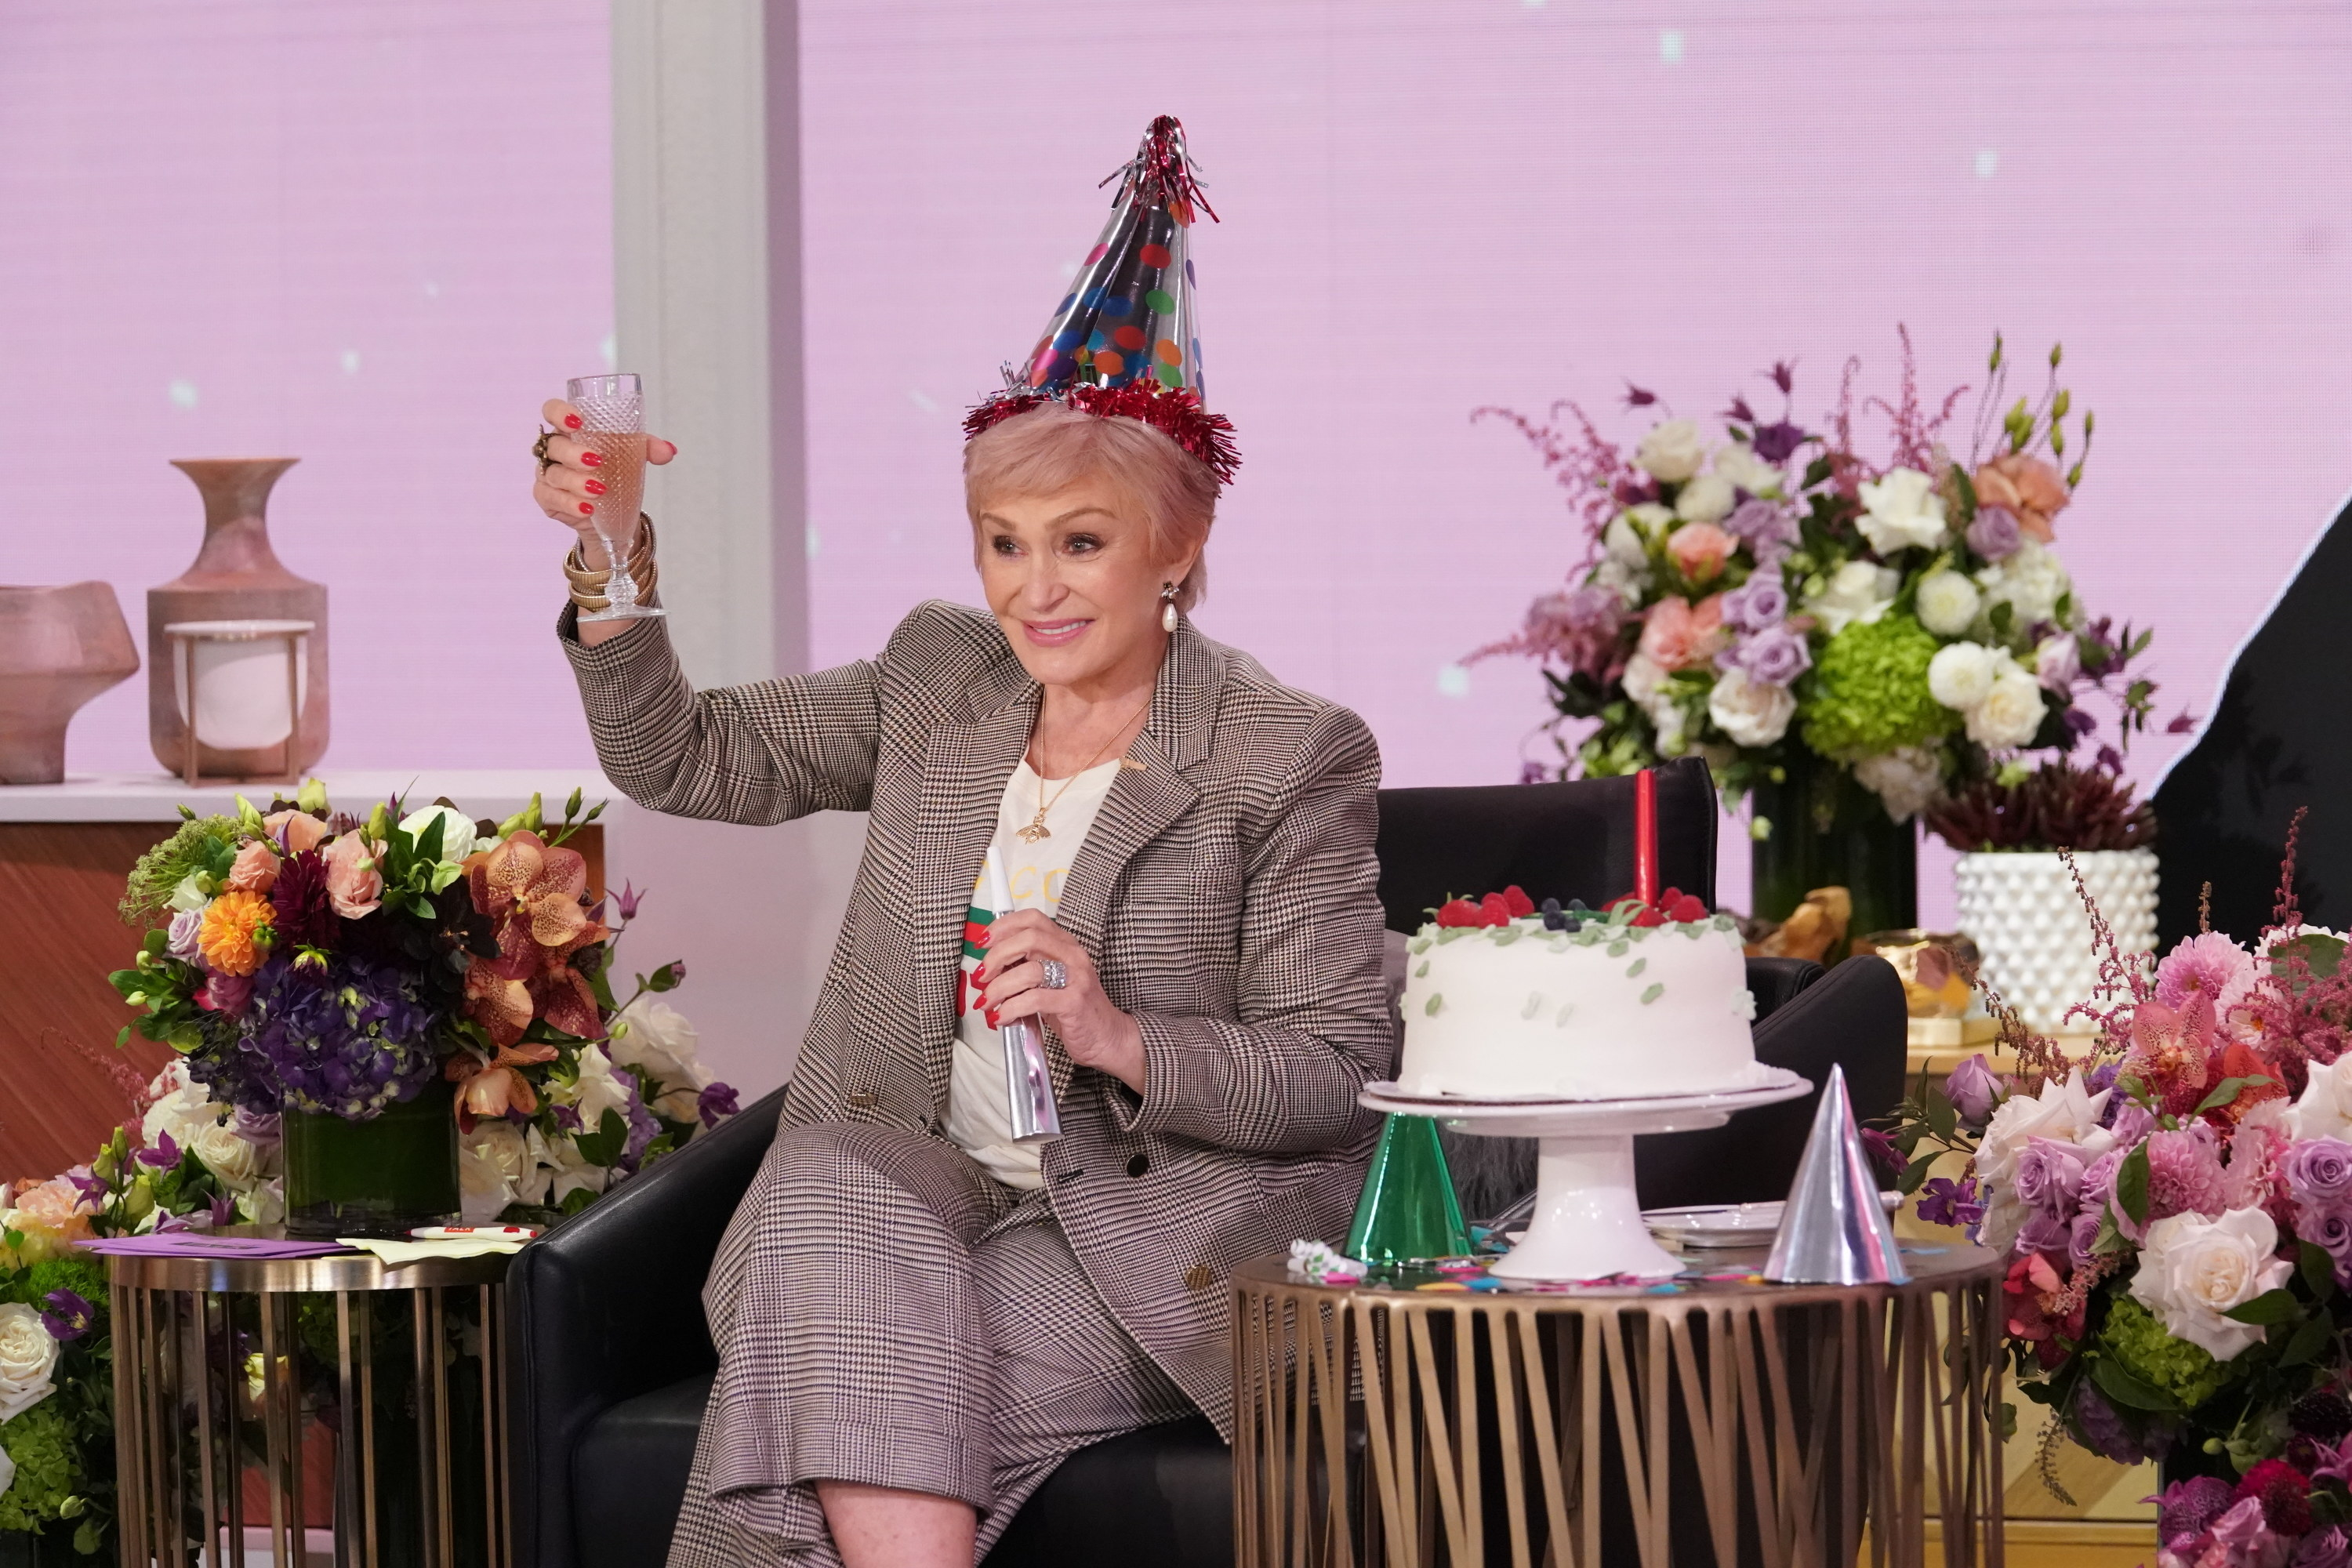 Osbourne wears a party hat and holds up a glass during an episode of The Talk